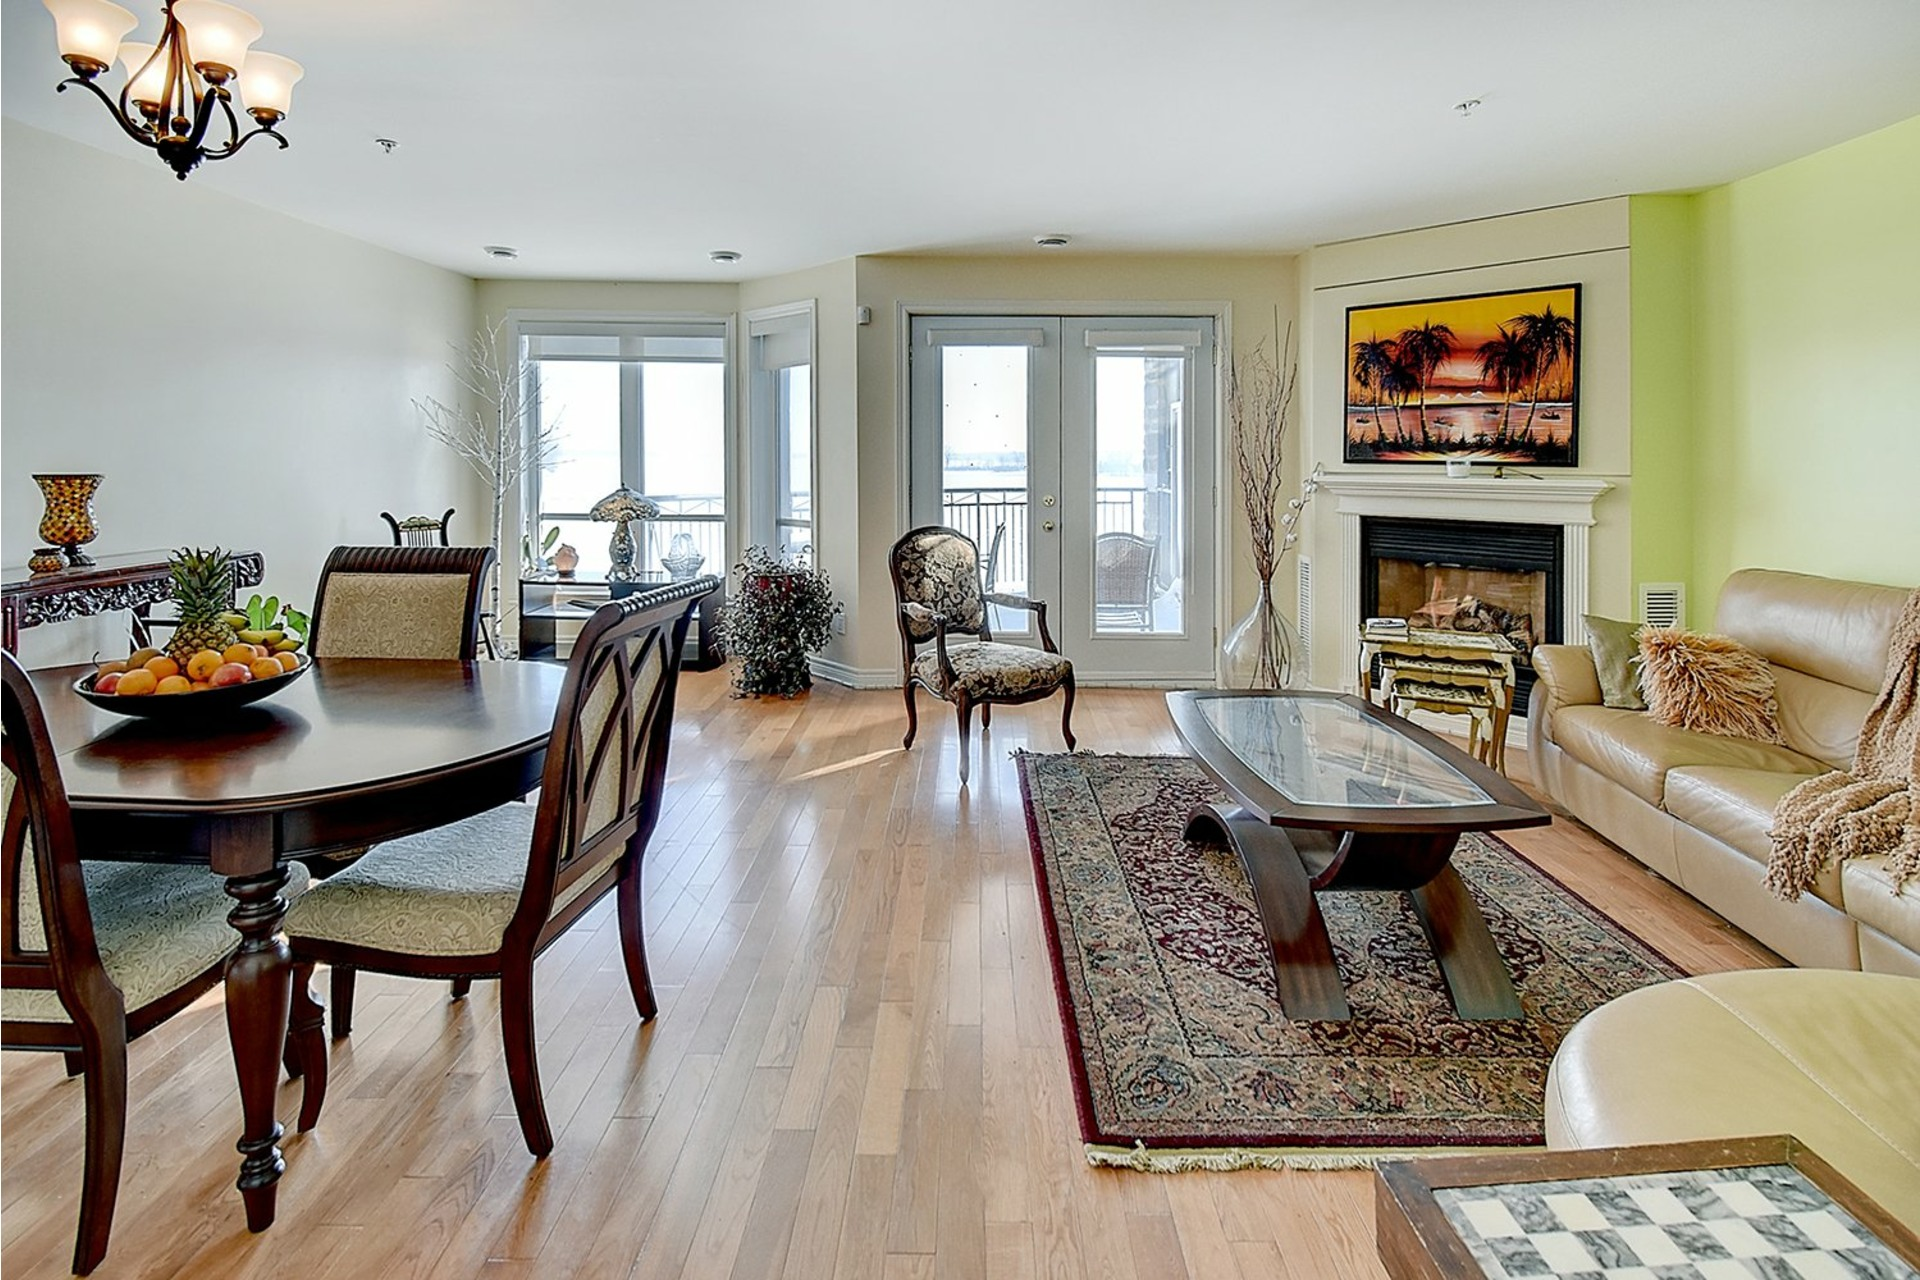 image 2 - Apartment For sale L'Île-Perrot - 8 rooms